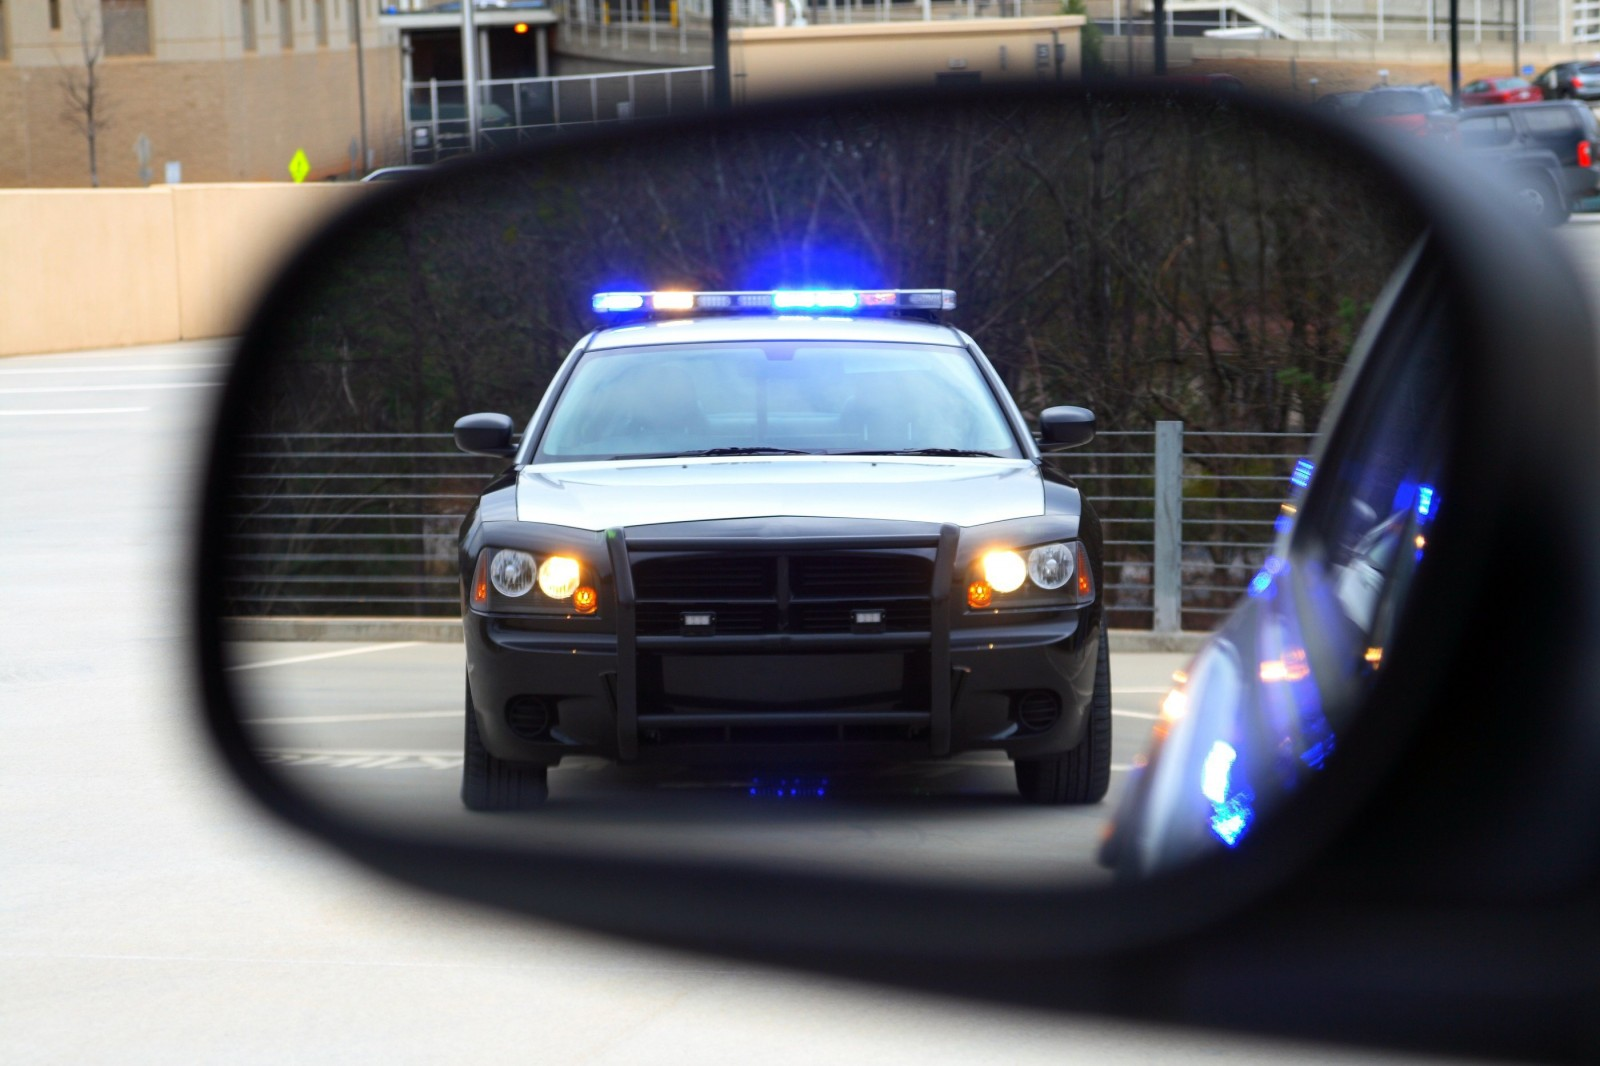 7 WAYS TO GET OUT OF A SPEEDING TICKET!